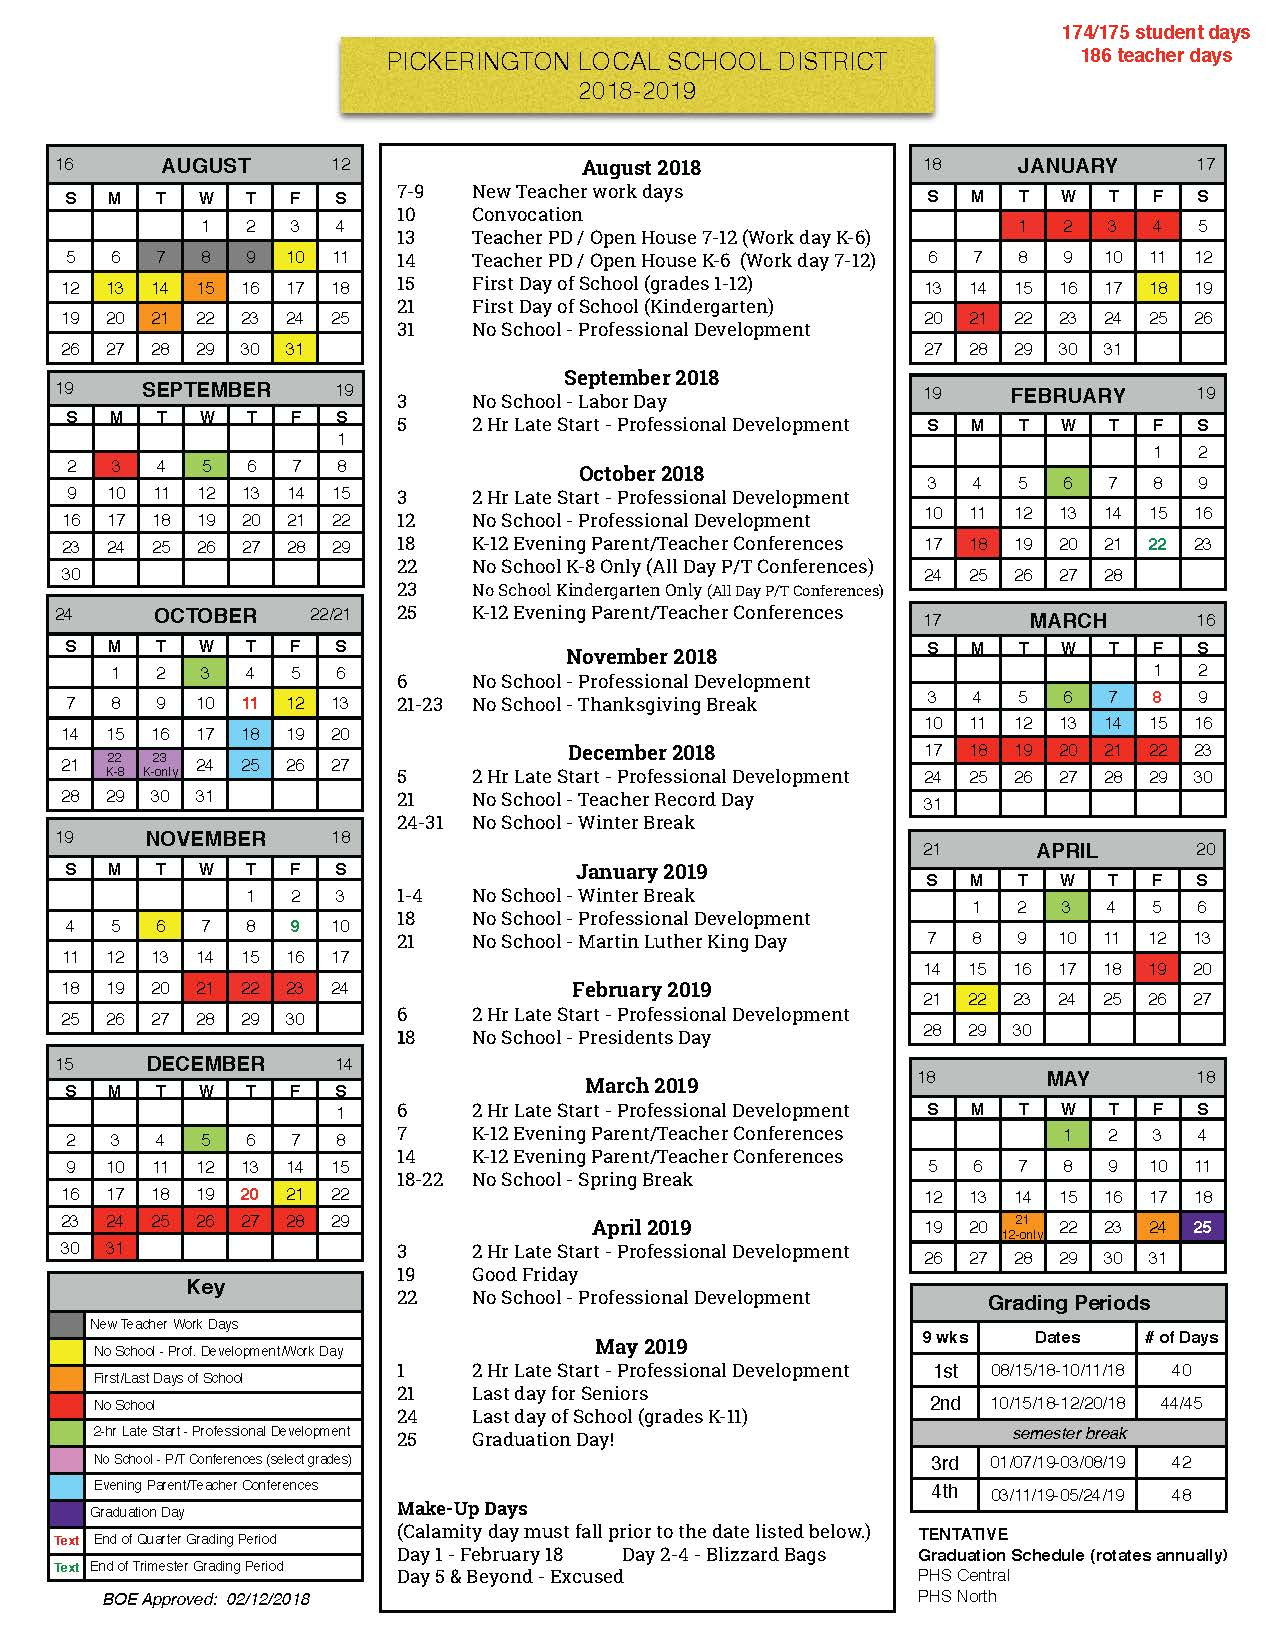 Board Of Education Approves 2018 19 Calendar - Pickerington With Regard To Board Of Education Calendar